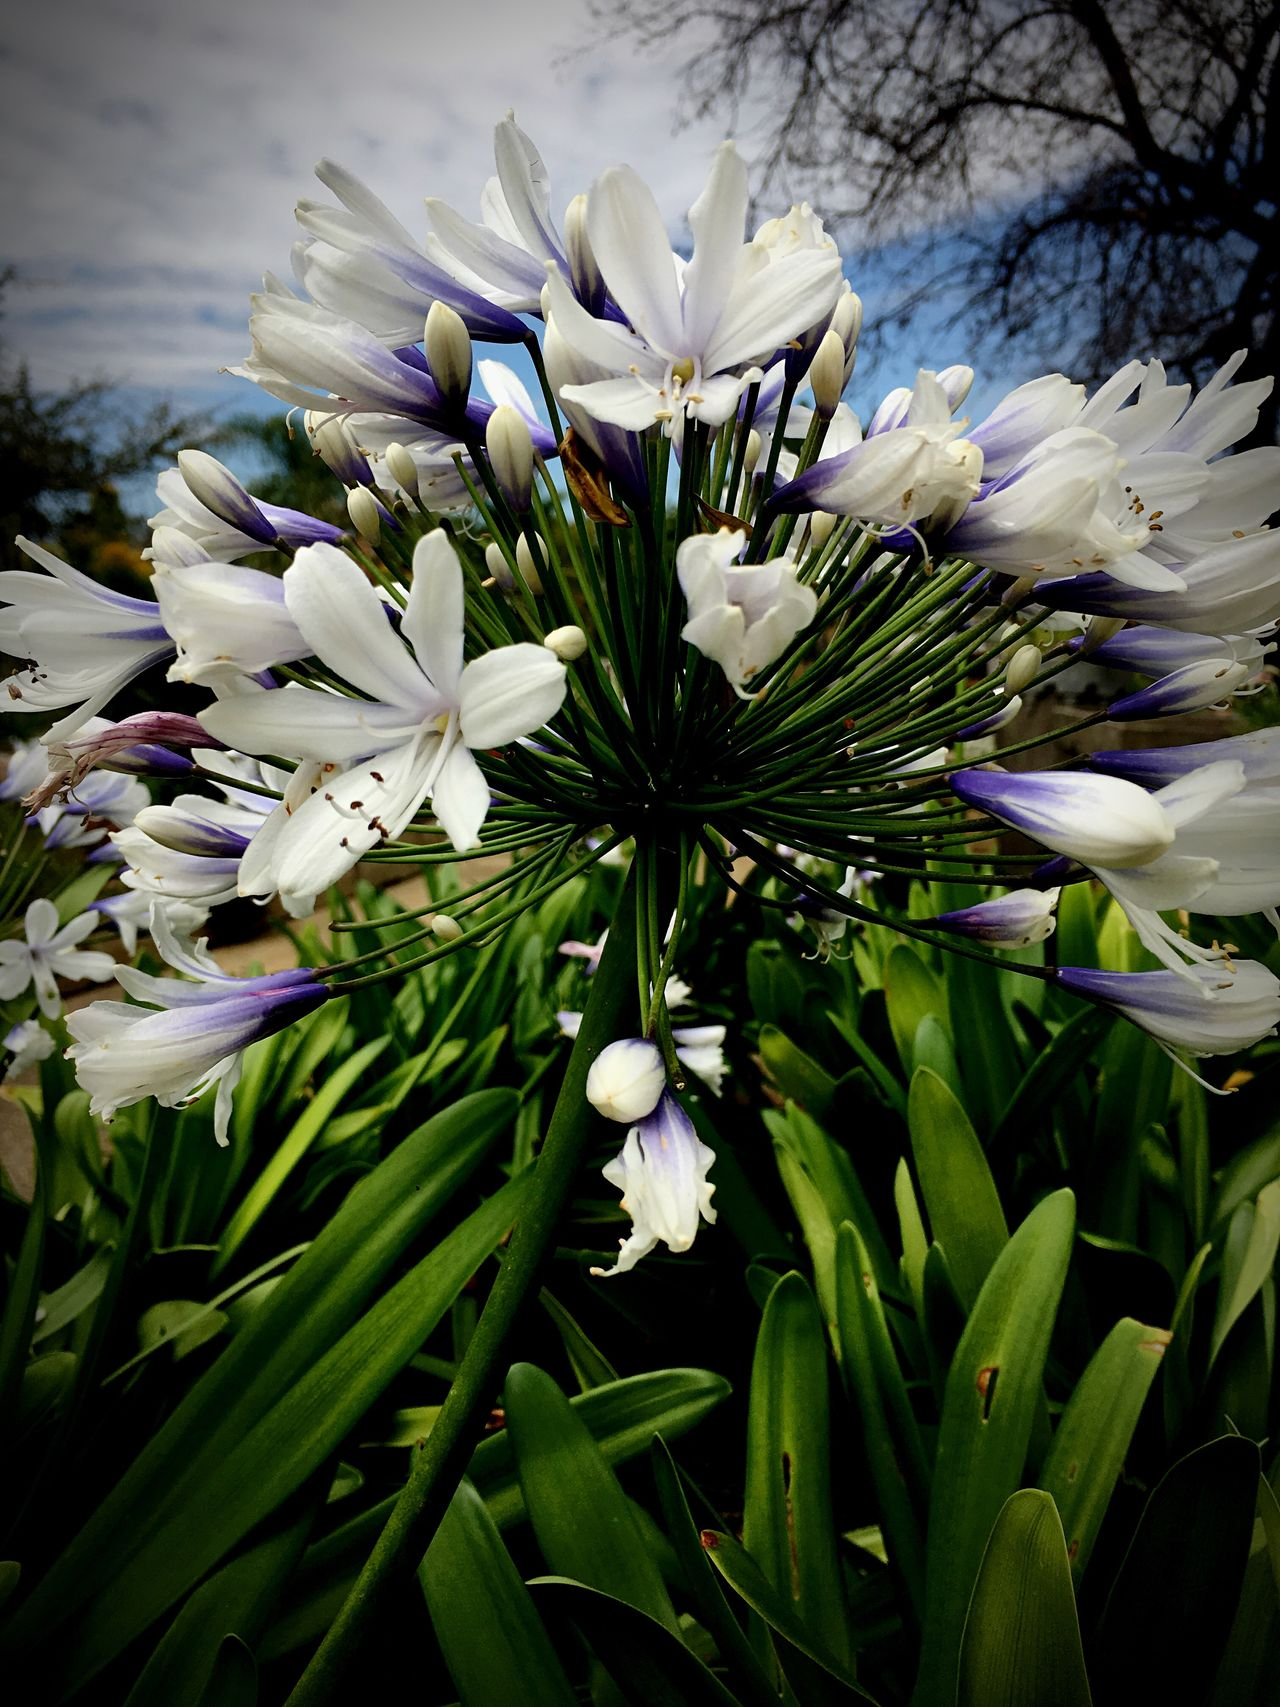 Agapanthus Flower Nature Flower Head Petals No People Freshness Growth Close-up White And Purple Flower